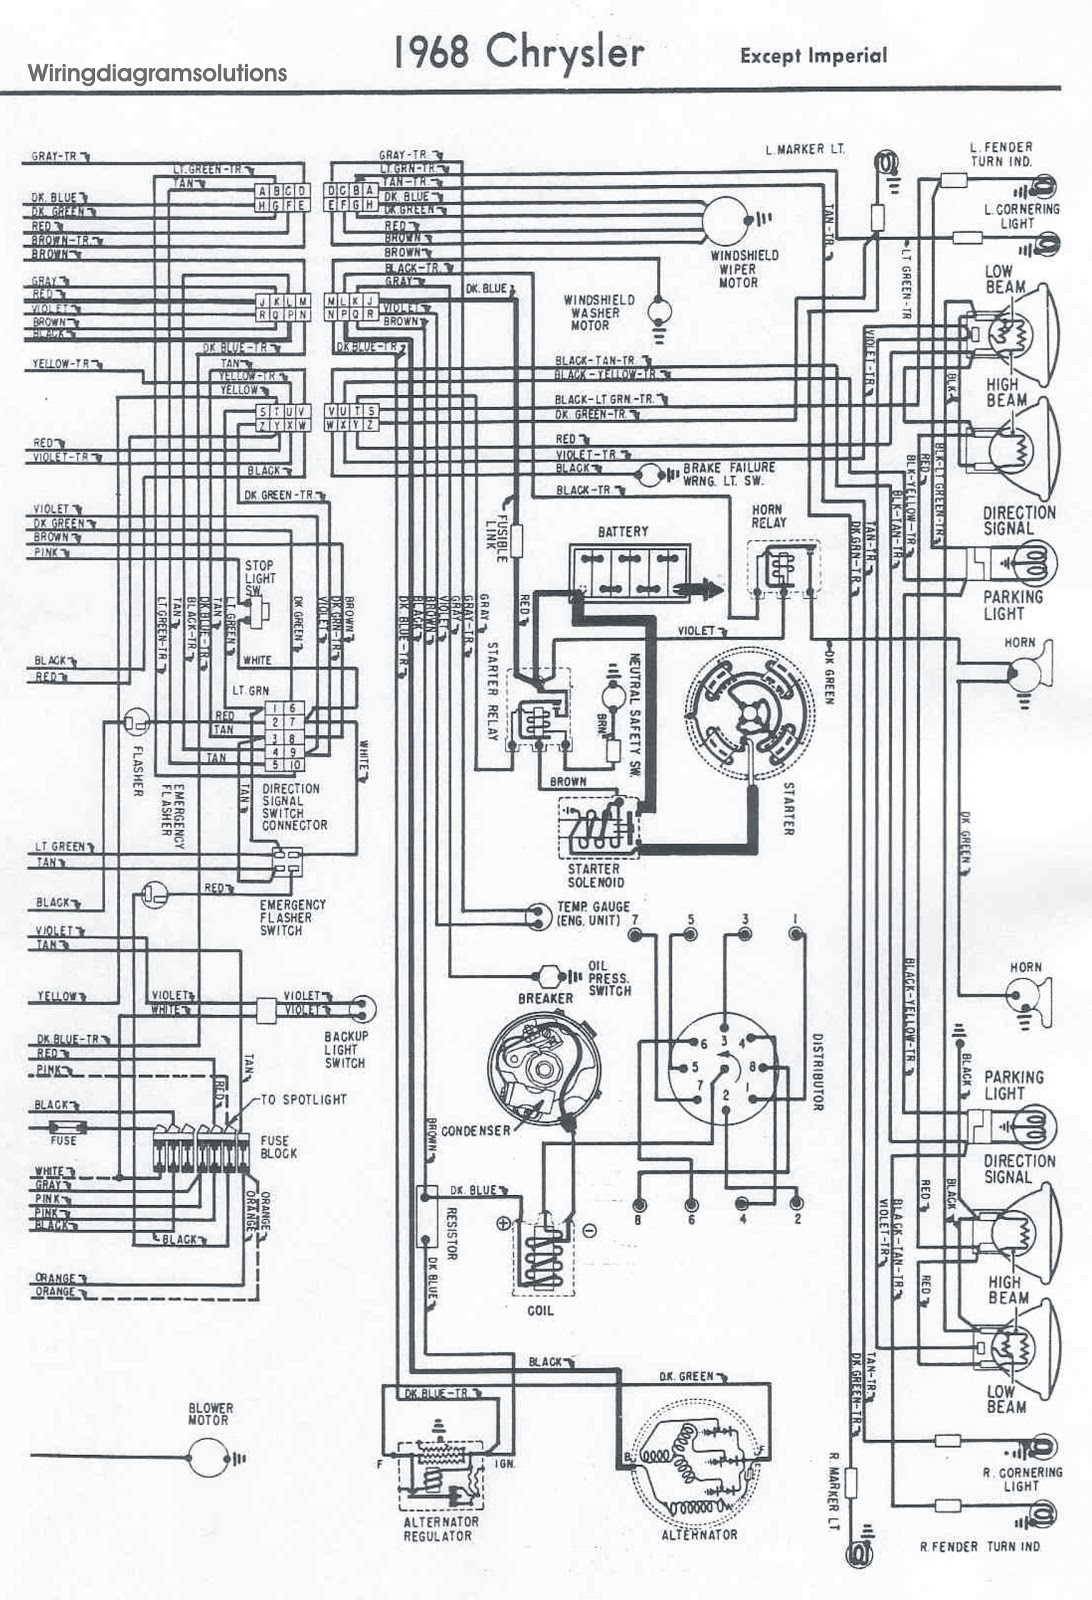 DIAGRAM] 1939 Chrysler Wiring Diagram FULL Version HD Quality Wiring Diagram  - DIAGRAMGAME.GLAUCOMANET.ITGlaucomanet.it